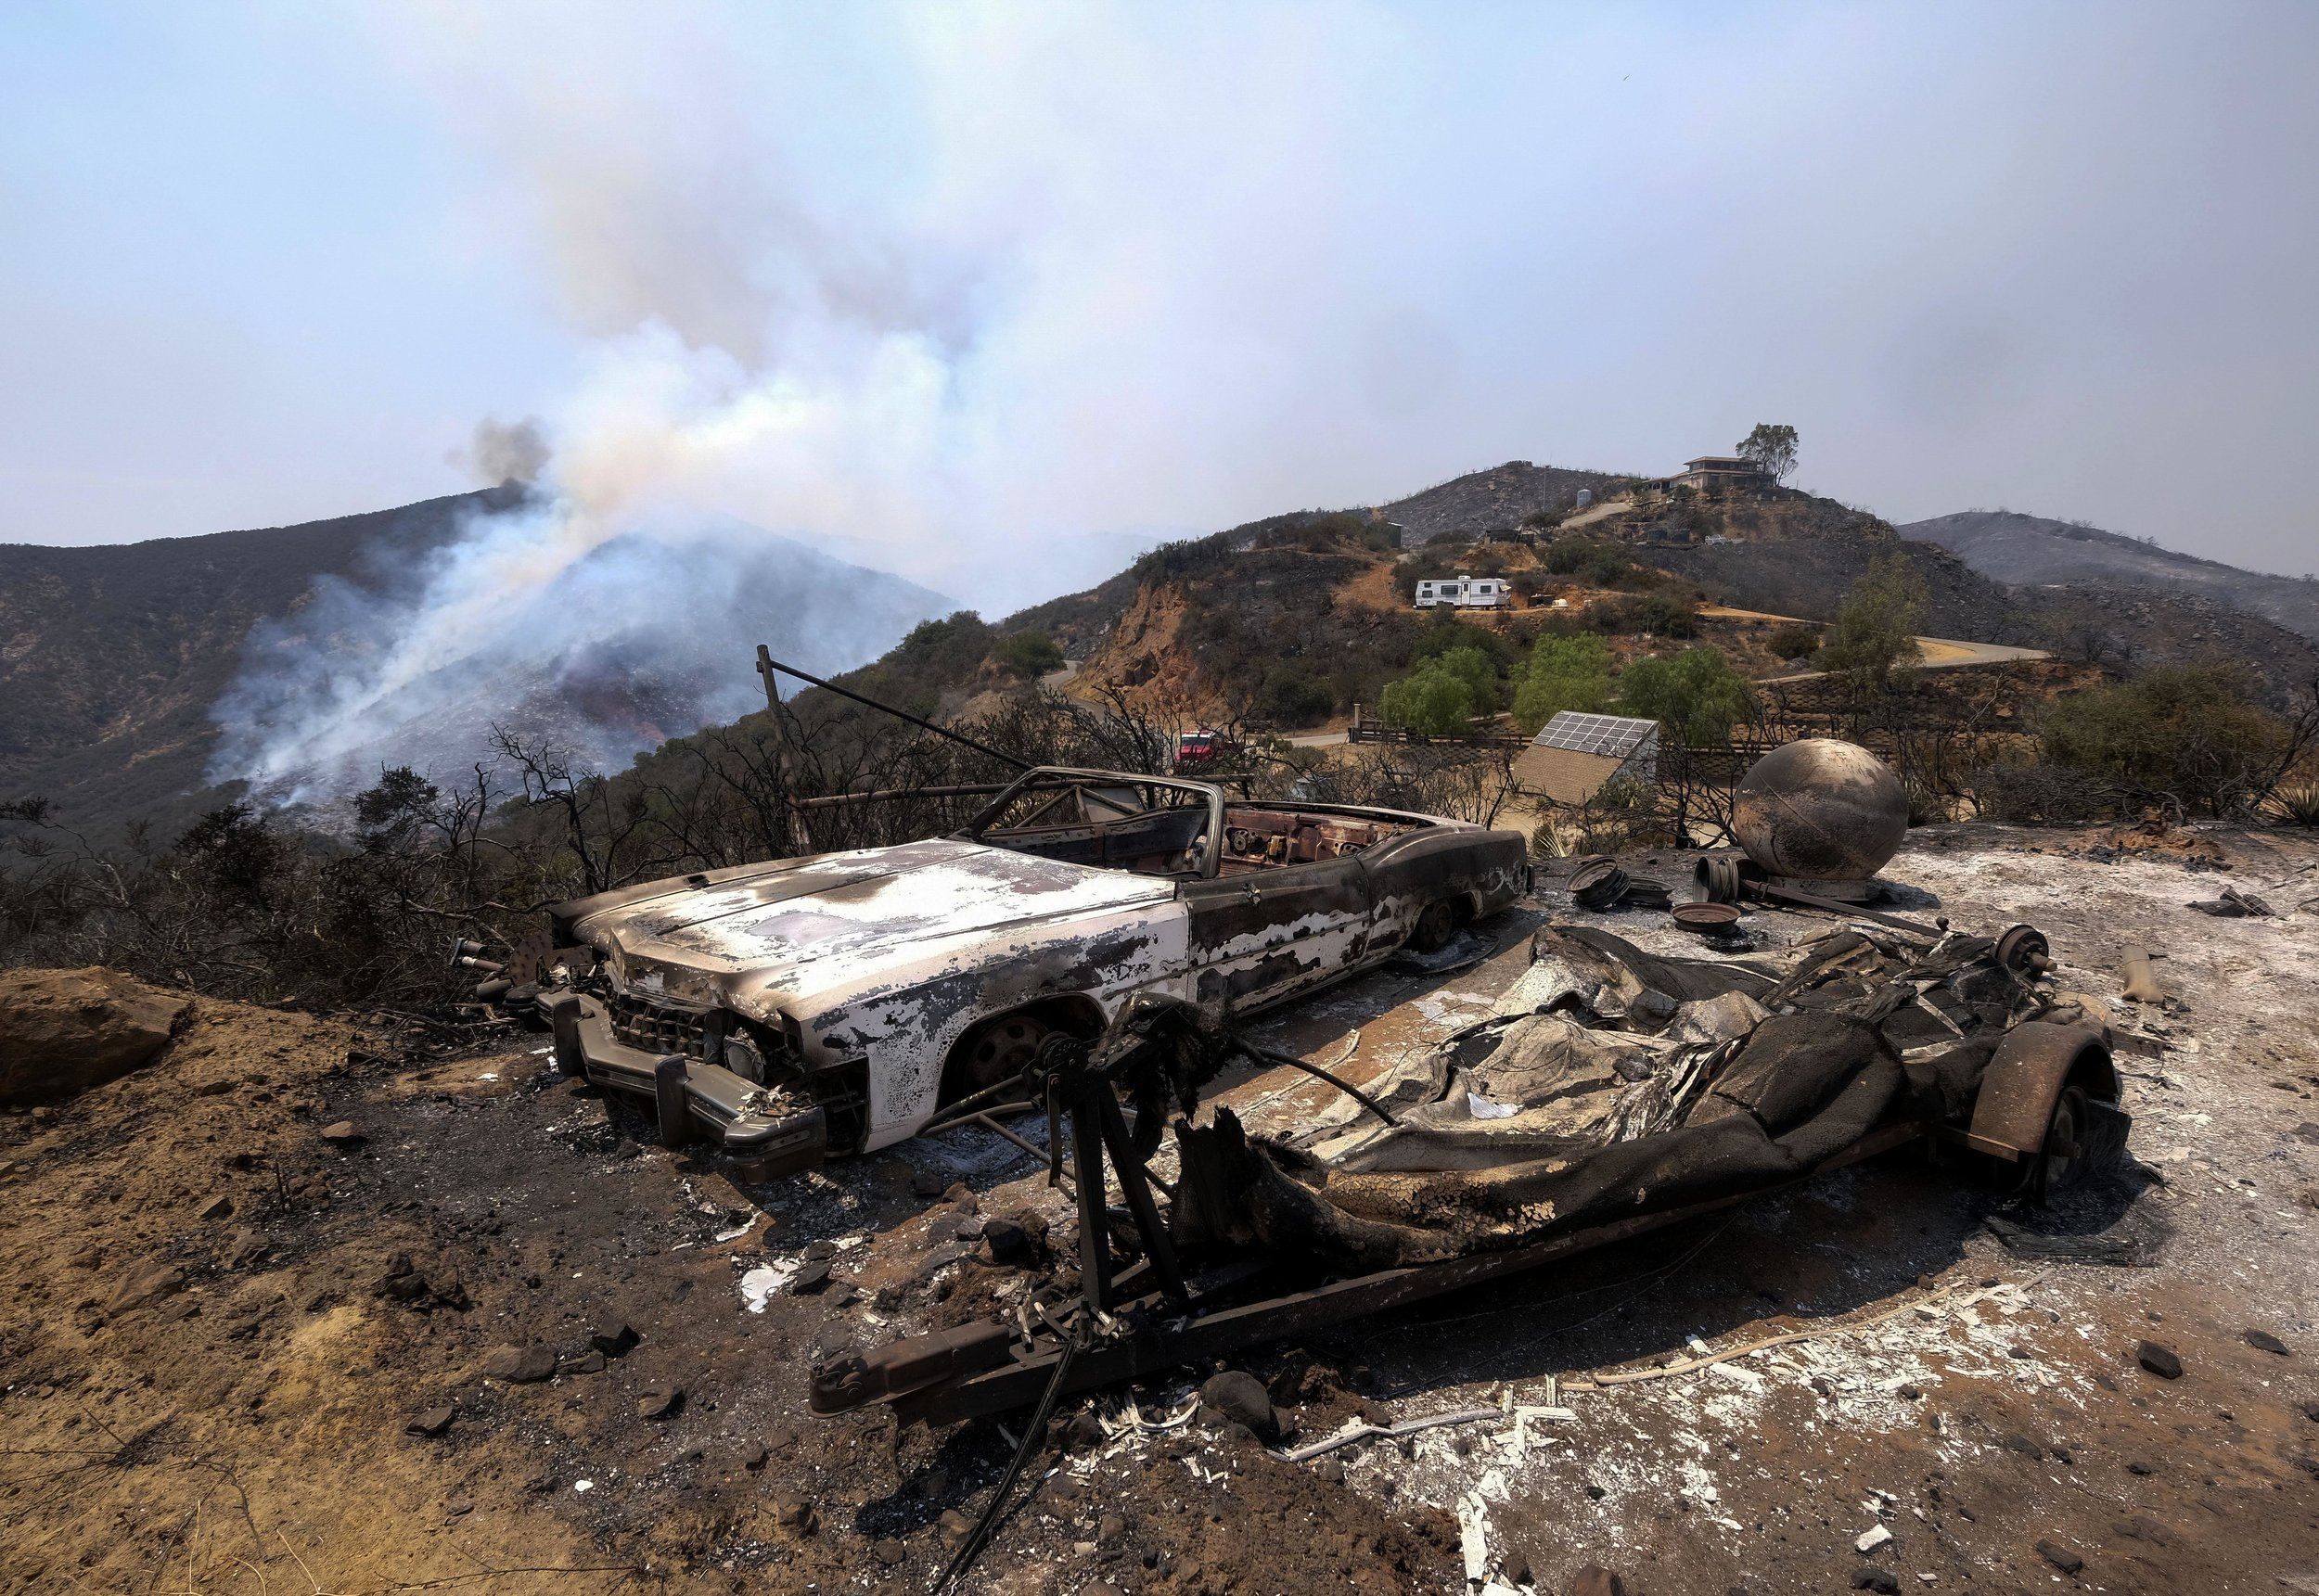 The charred remains of burned-out cars are seen at the Holy Fire in Lake Elsinore, California, southeast of Los Angeles, on August 11, 2018. The fire has burned 21,473 acres and was 29 percent contained as of 8:30 a.m. Saturday, according to the Cleveland National Forest.